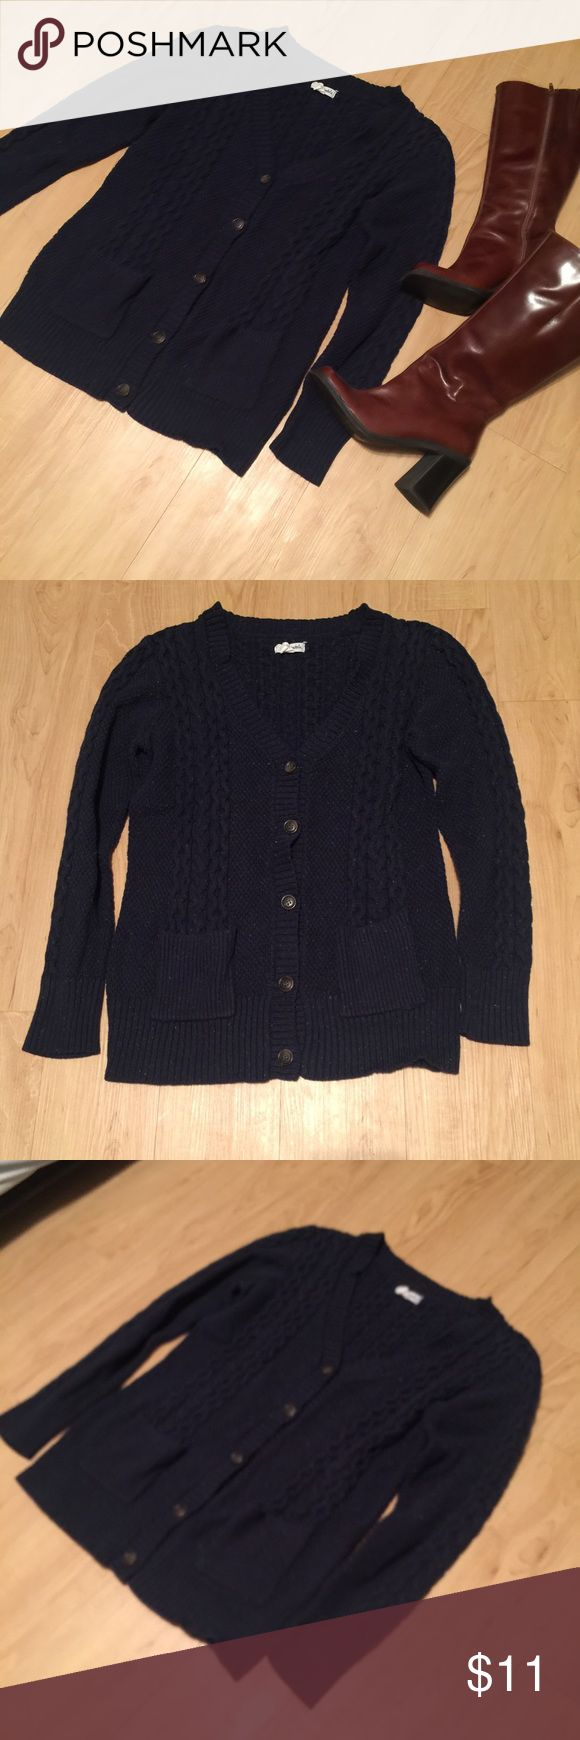 Aeropostale Navy Cardigan Sweater Warm sweater!! Size extra large. Navy color with multicolor specs. Super cute! No flaws or defects, ready to ship! Boots for sale too! Aeropostale Sweaters Cardigans